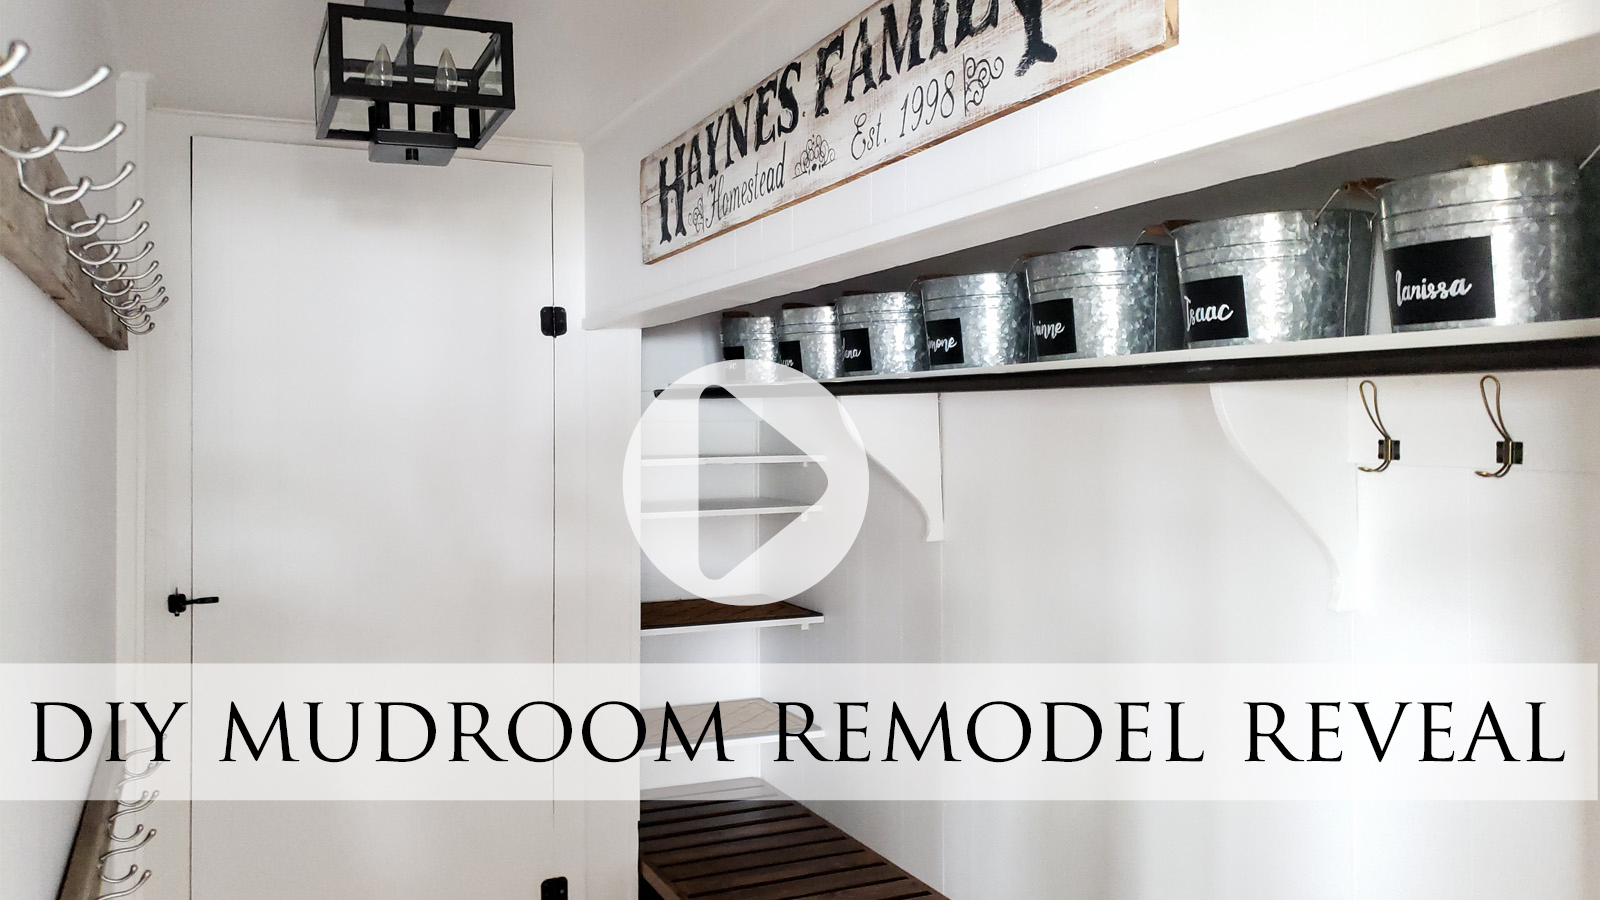 DIY Mudroom Remodel with DIY Storage Video Tour by Larissa of Prodigal Pieces | prodigalpieces.com #prodigalpieces